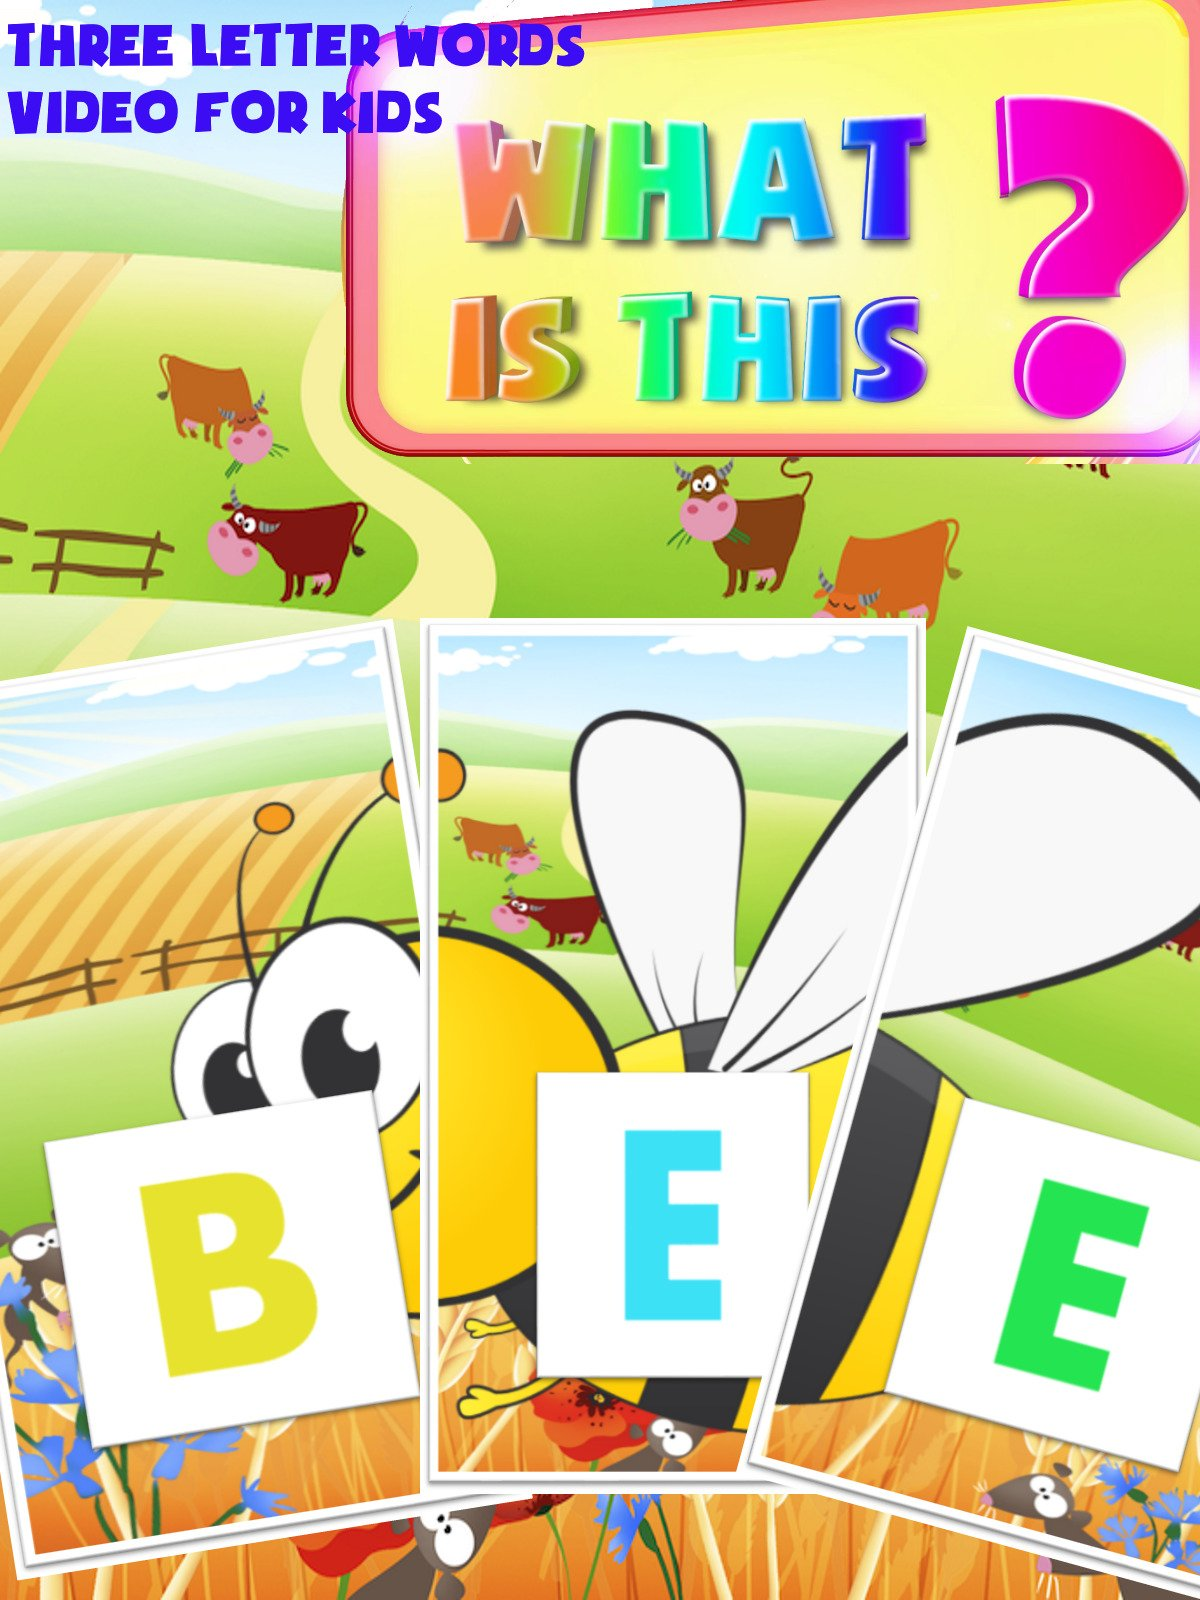 What Is This ? Three Letter Words Video For Kids